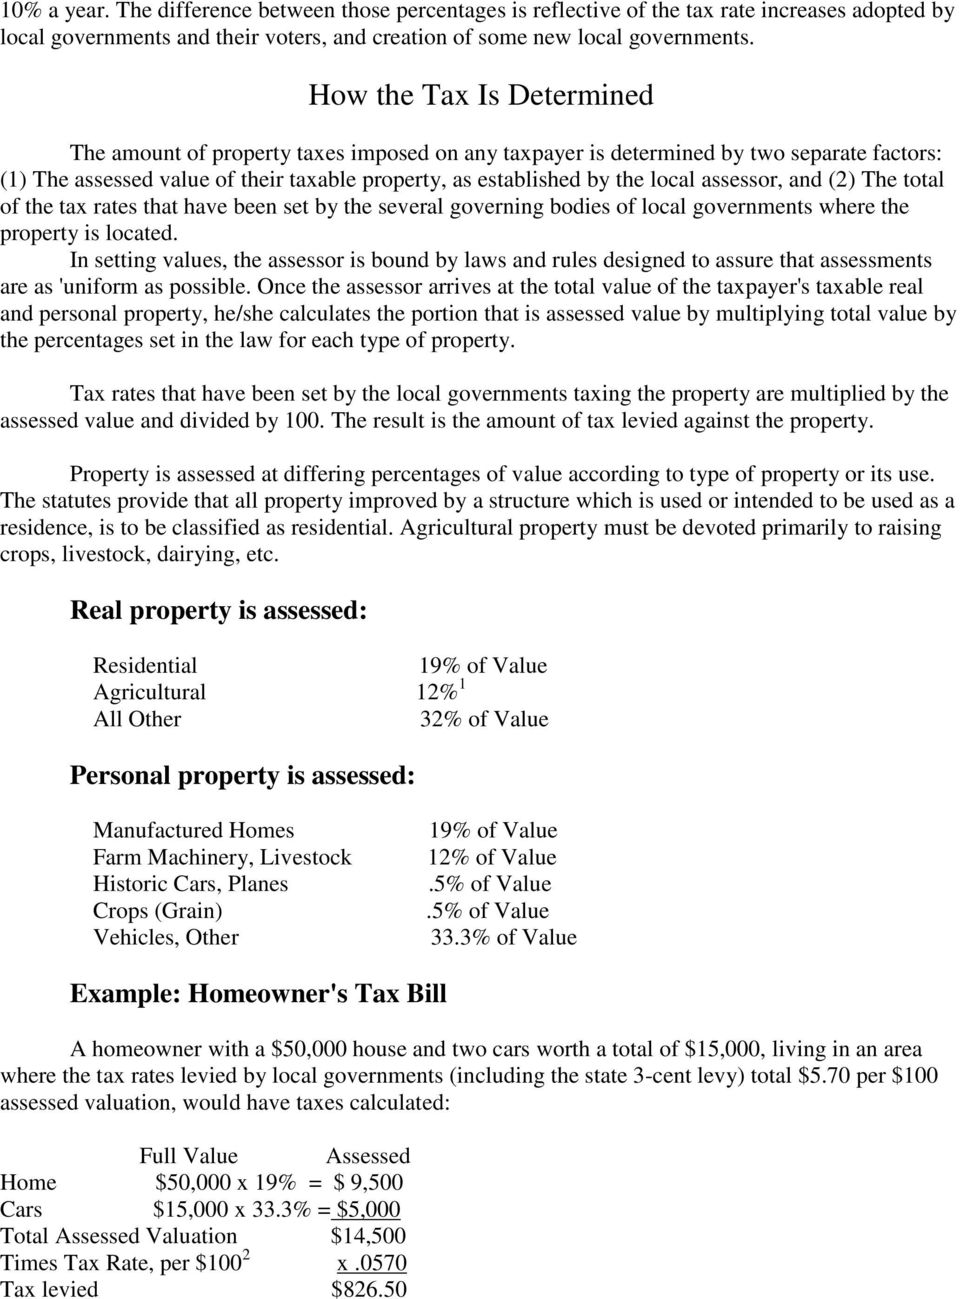 assessor, and (2) The total of the tax rates that have been set by the several governing bodies of local governments where the property is located.